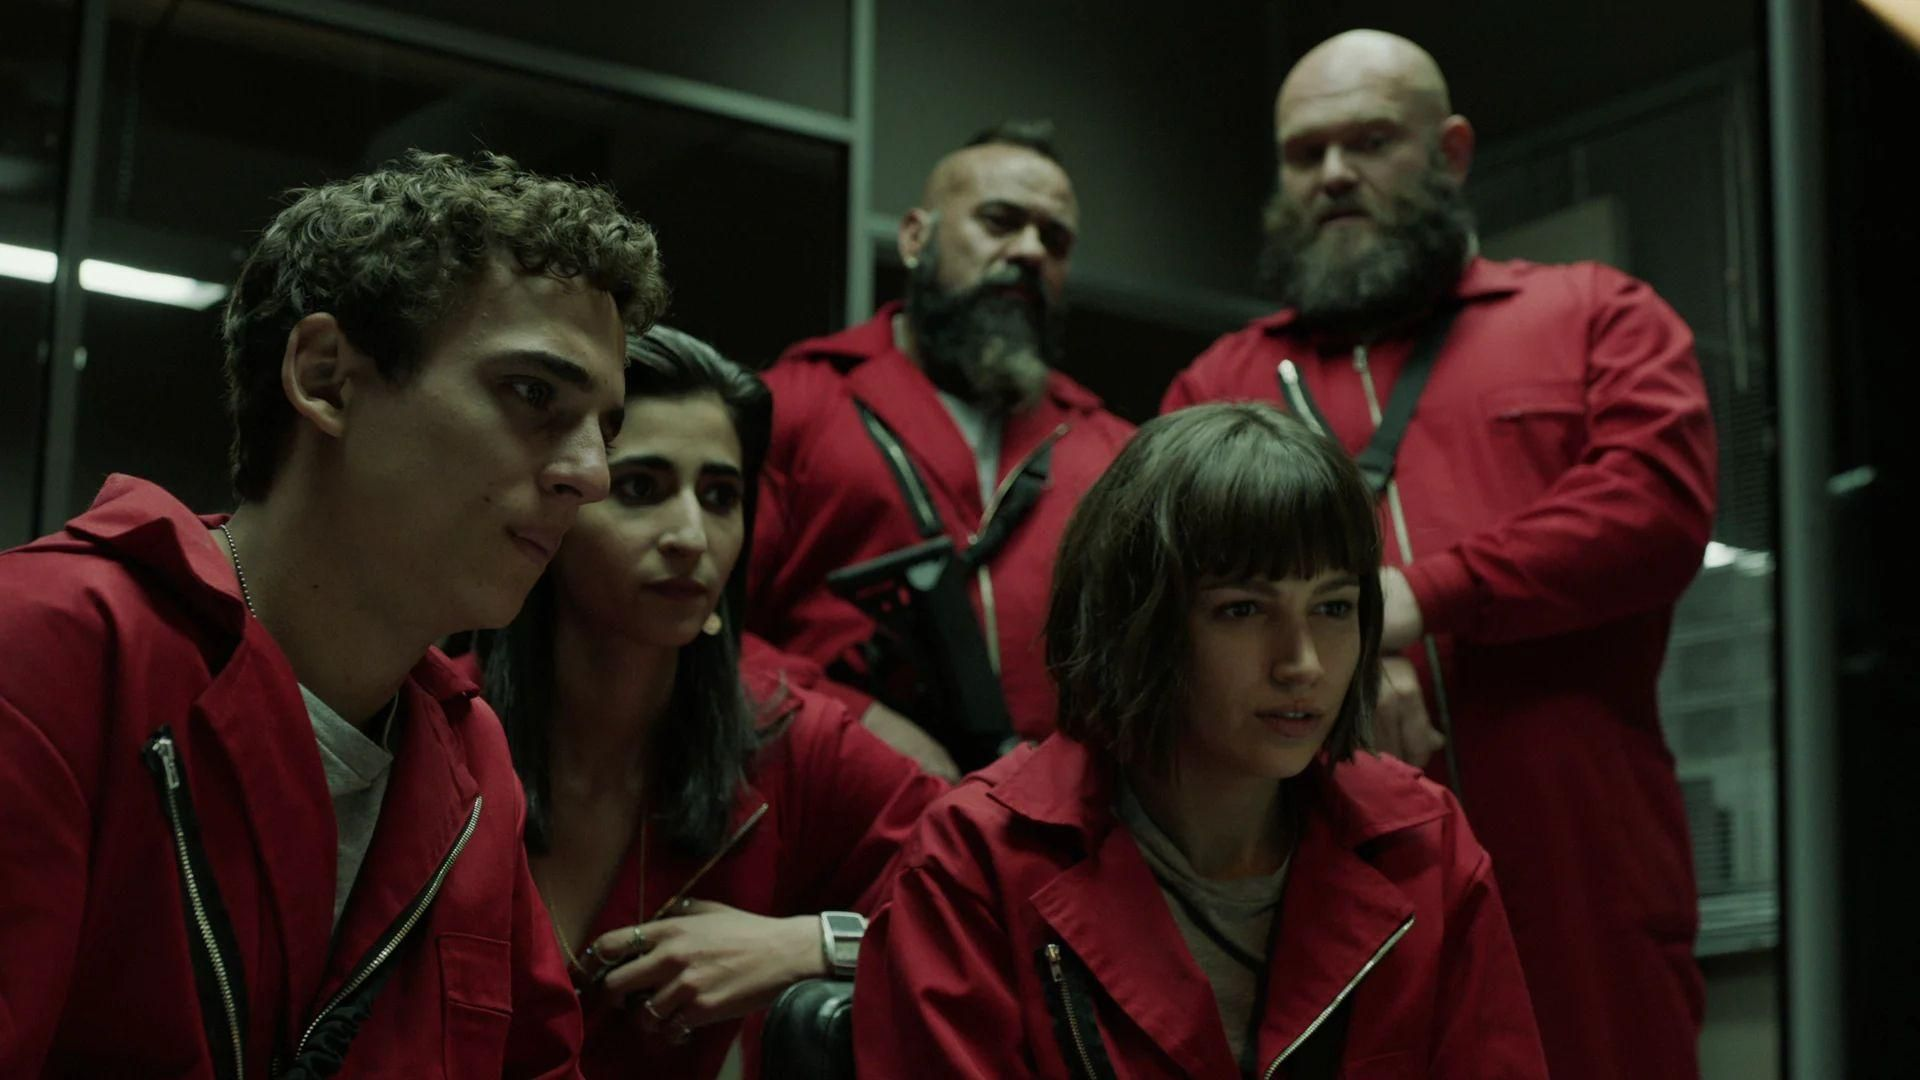 Netflix Money Heist Season 4 Cast And Plot Revealed For La Casa De Papel 4 Netflix Original Series Free Movies Online Netflix